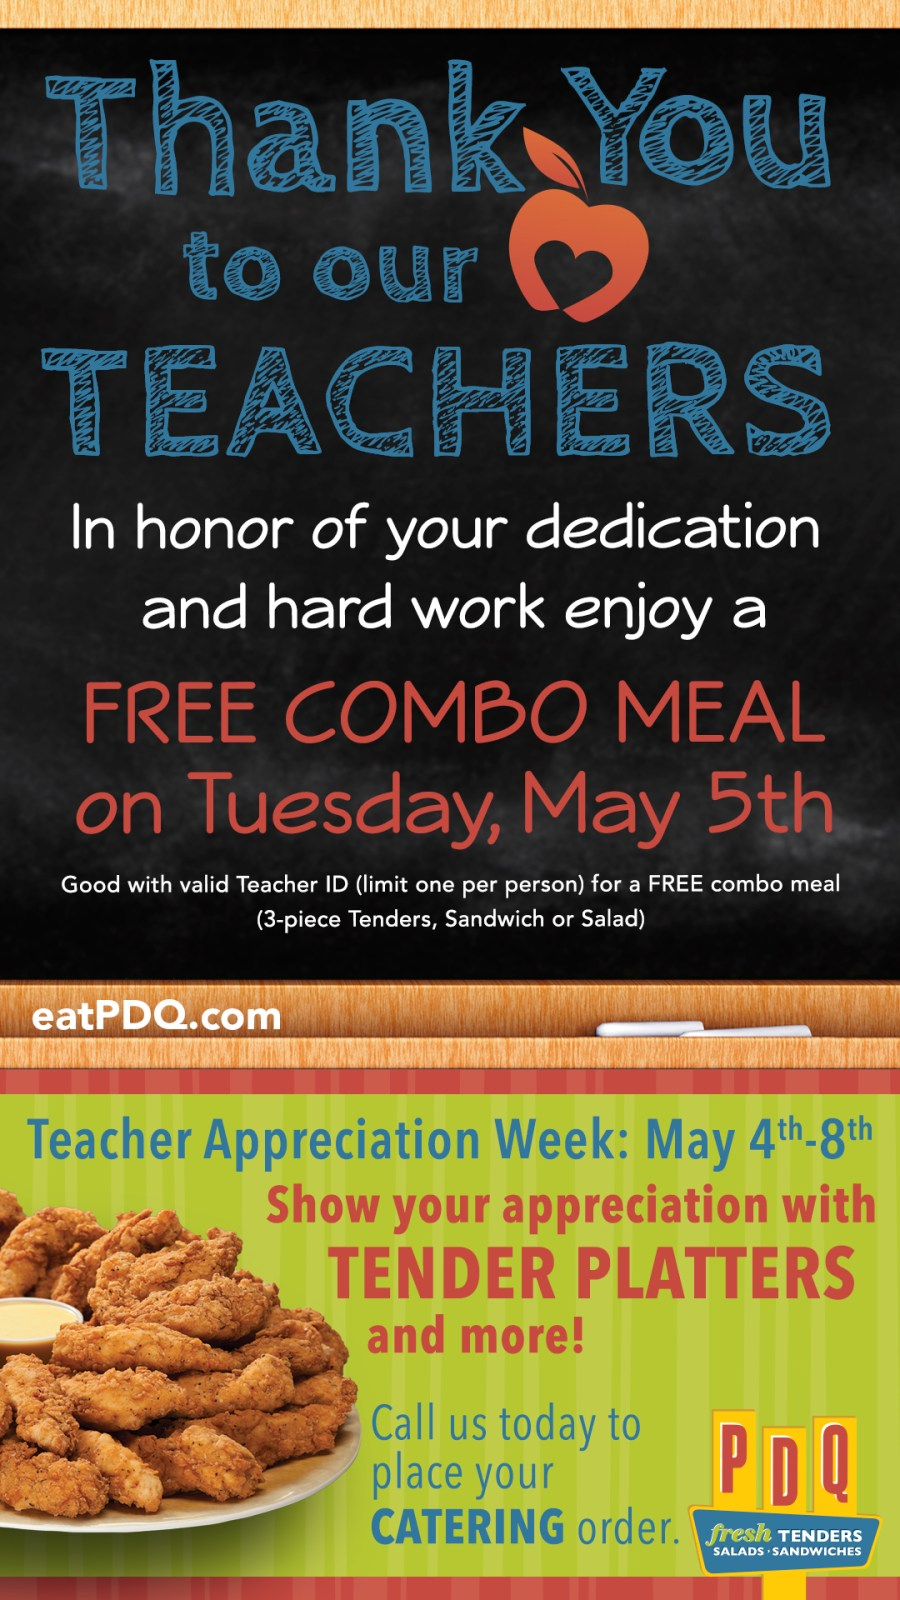 hotdeals, teacher appreciation